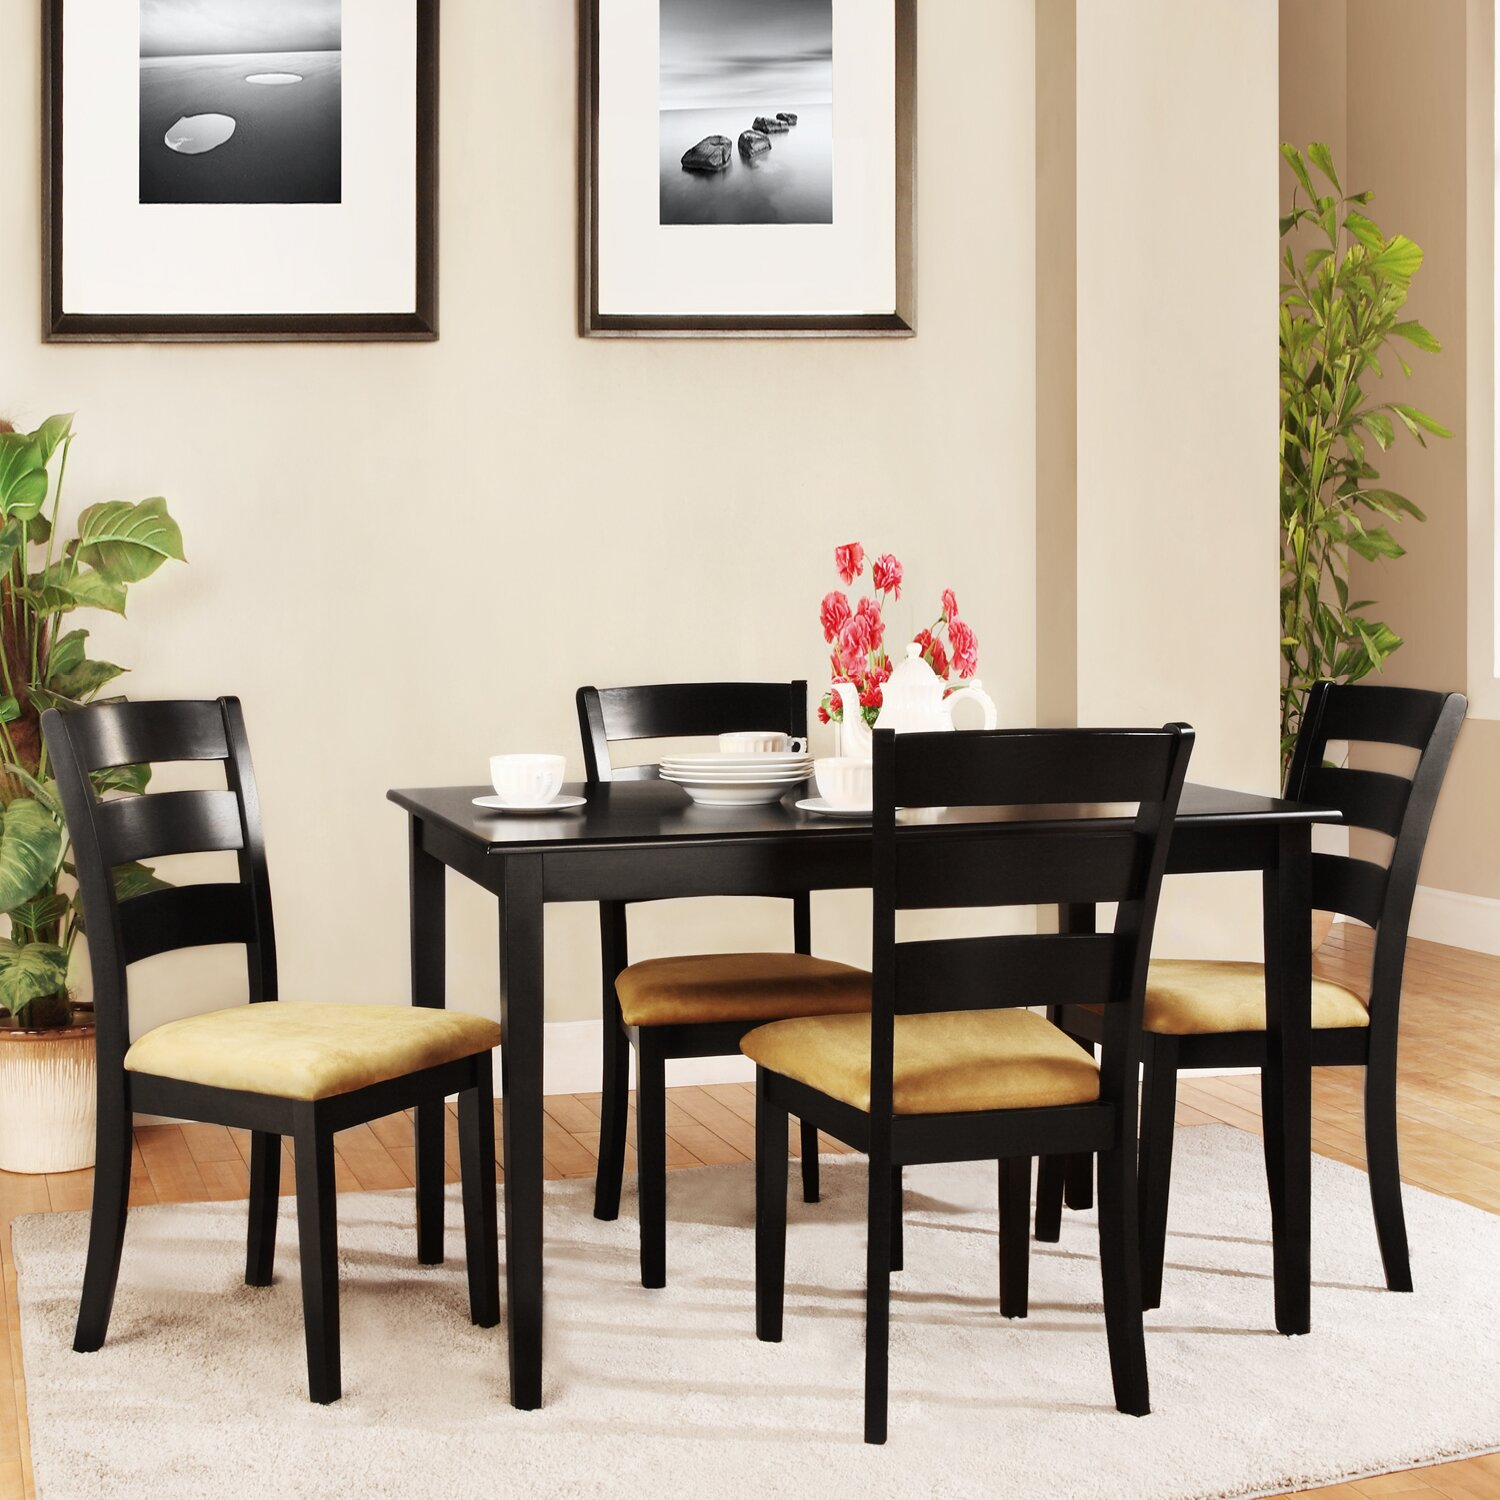 Kingstown home jeannette 5 piece dining set reviews for 5 piece dining room sets